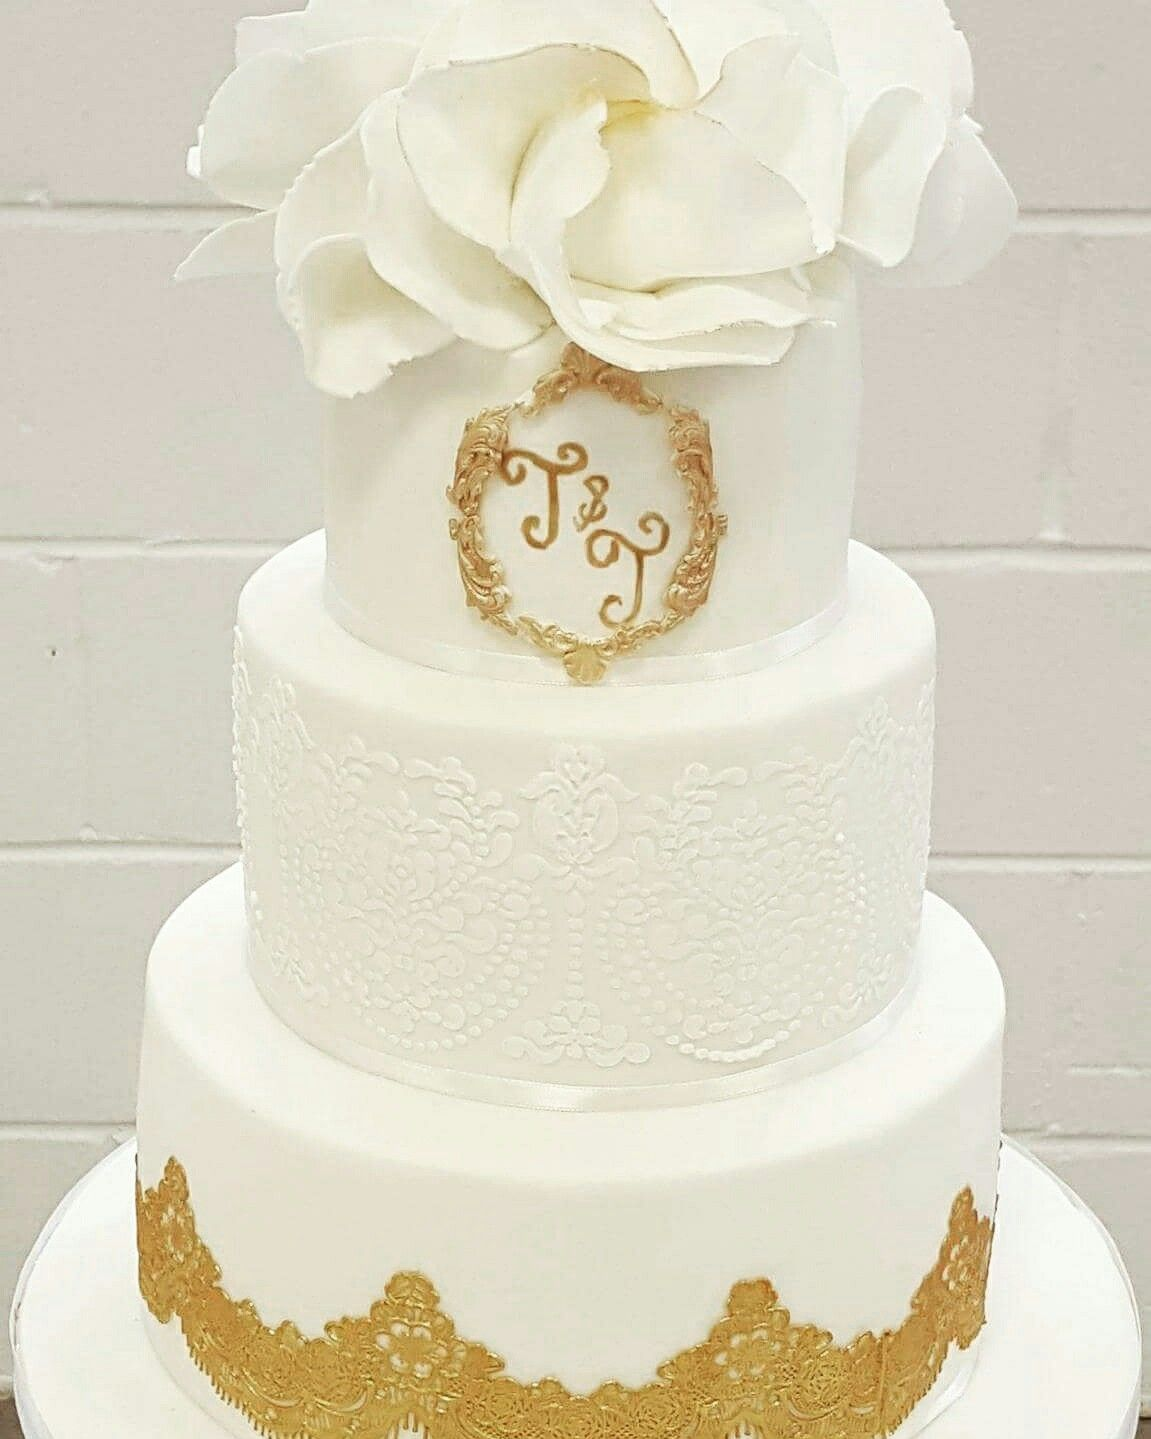 White And Gold Wedding Cake With Cake Lace And Roses Peonies - Cheltenham Wedding Cakes